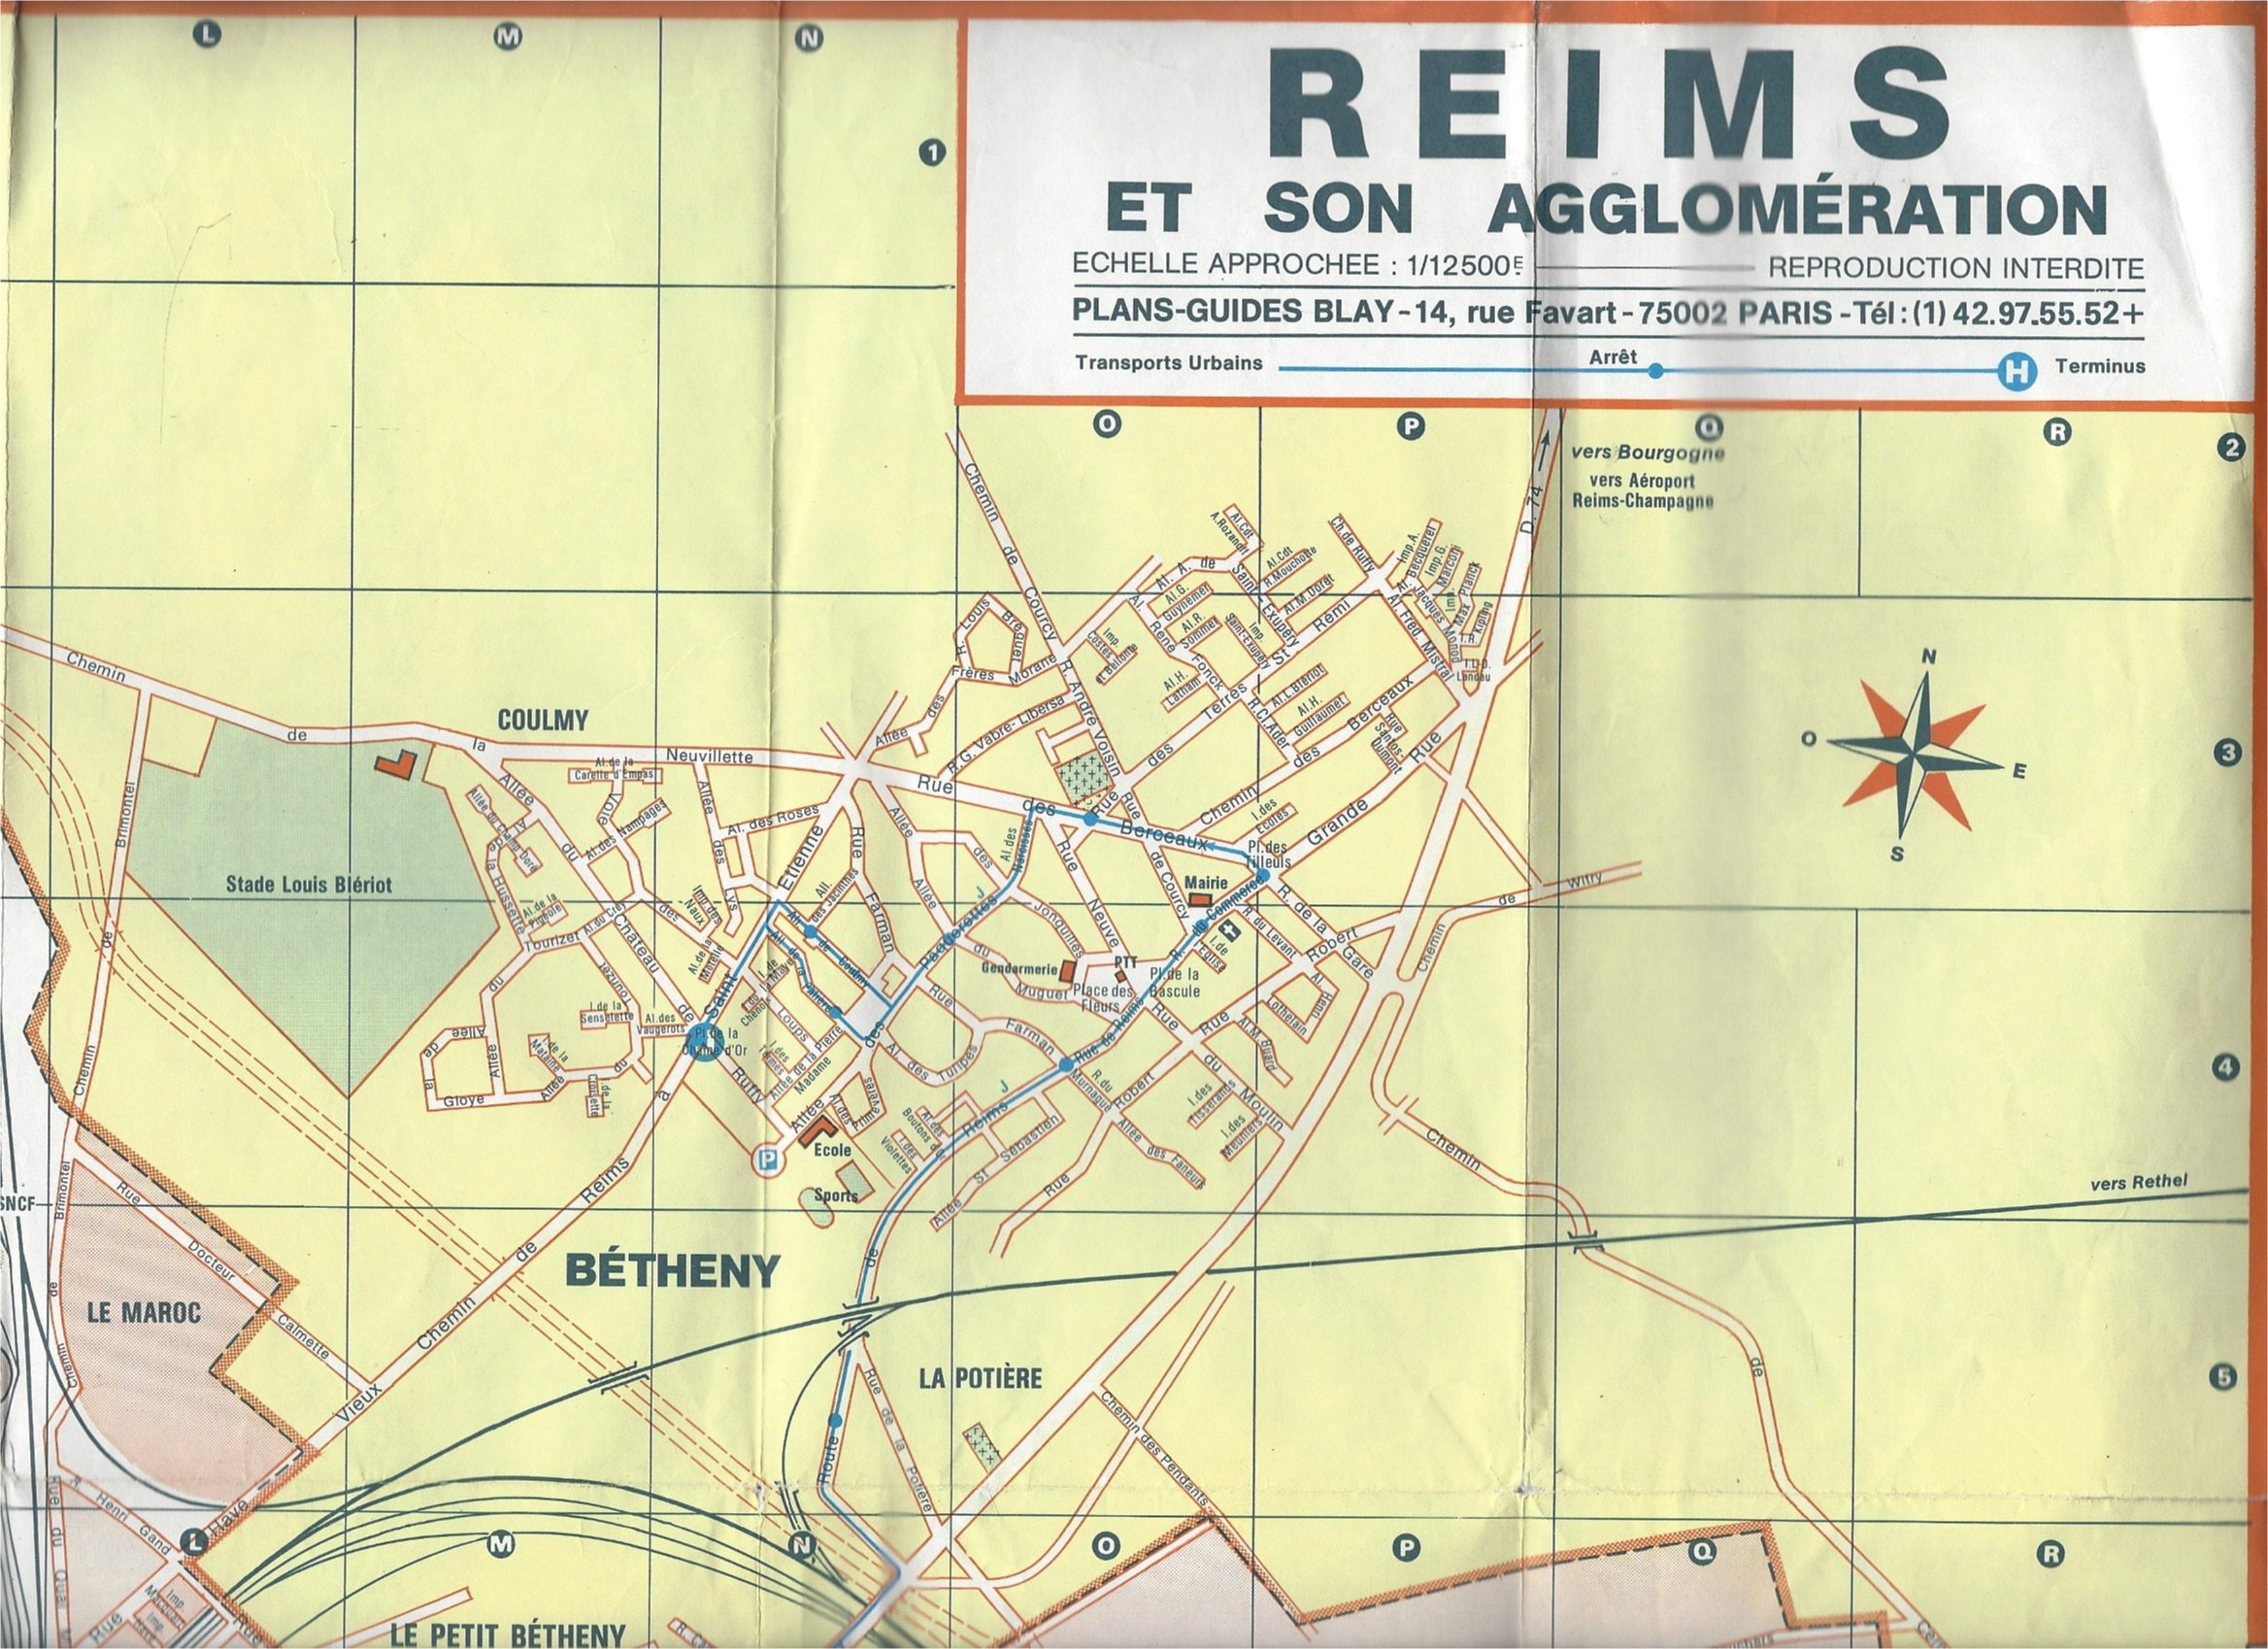 Reims Et Son Agglomeration par Plan Guide Blay: Plan Guide Blay ...